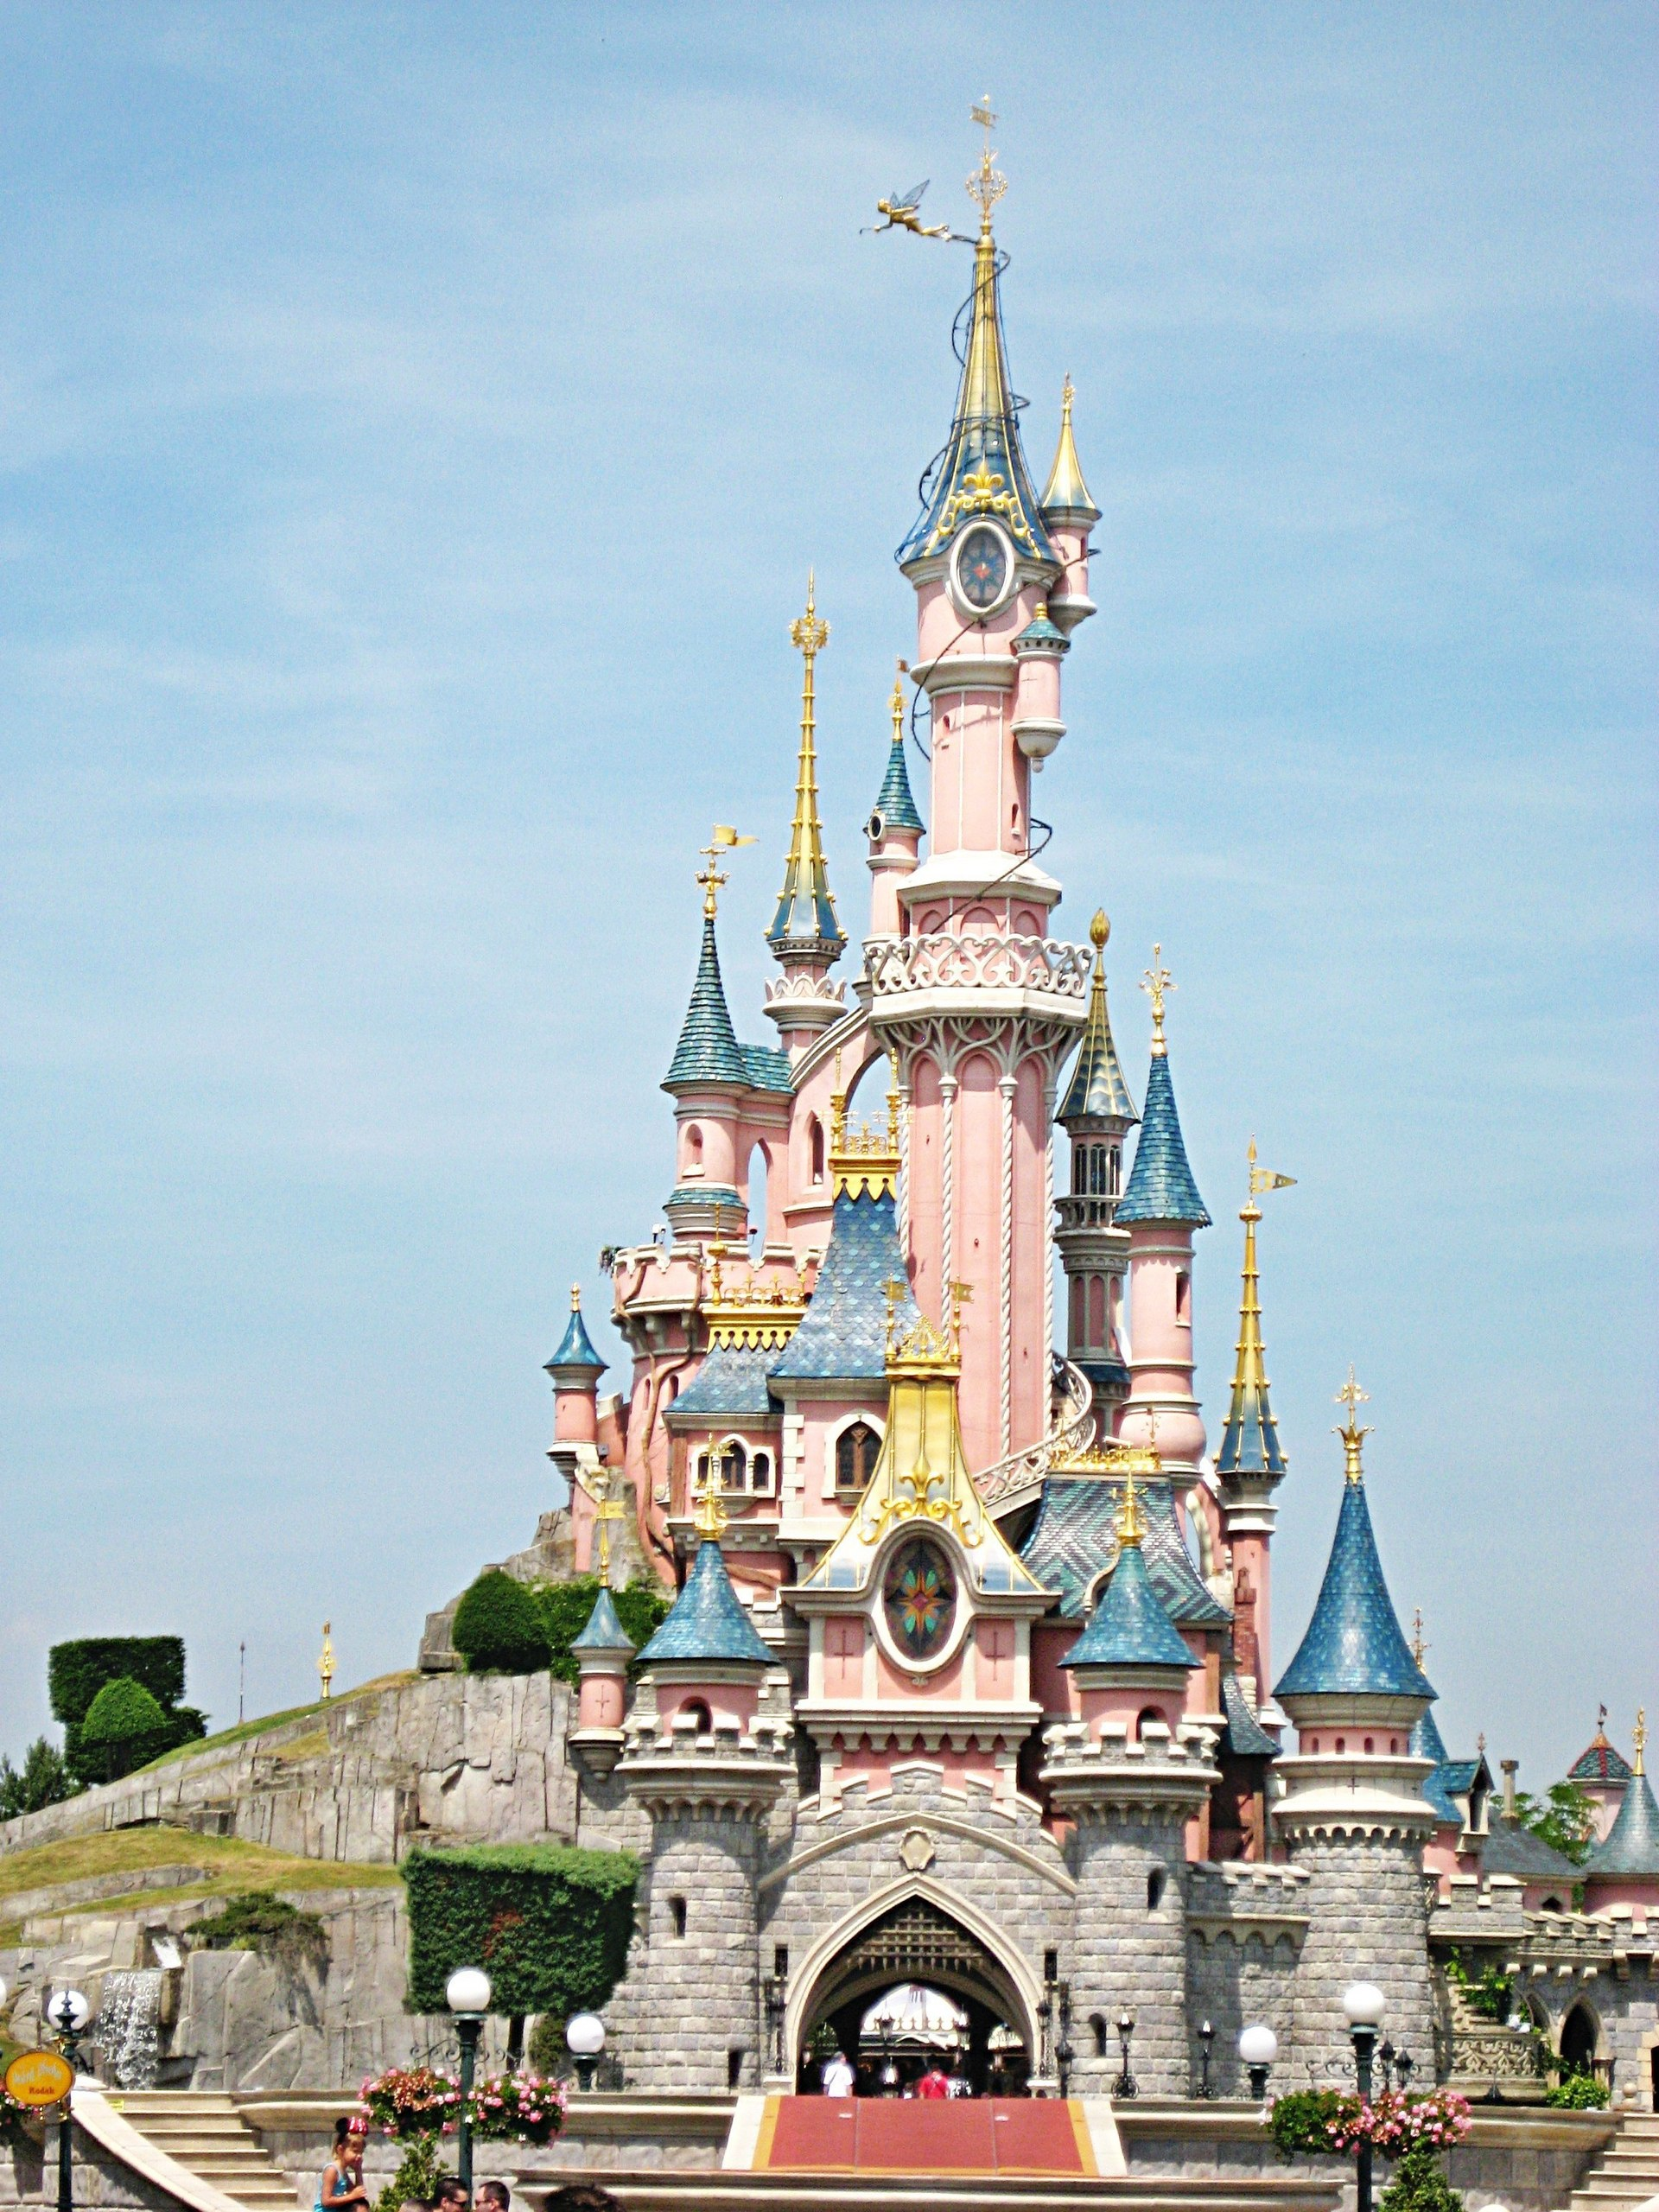 The Sleeping Beauty castelo @ Disneyland, Paris